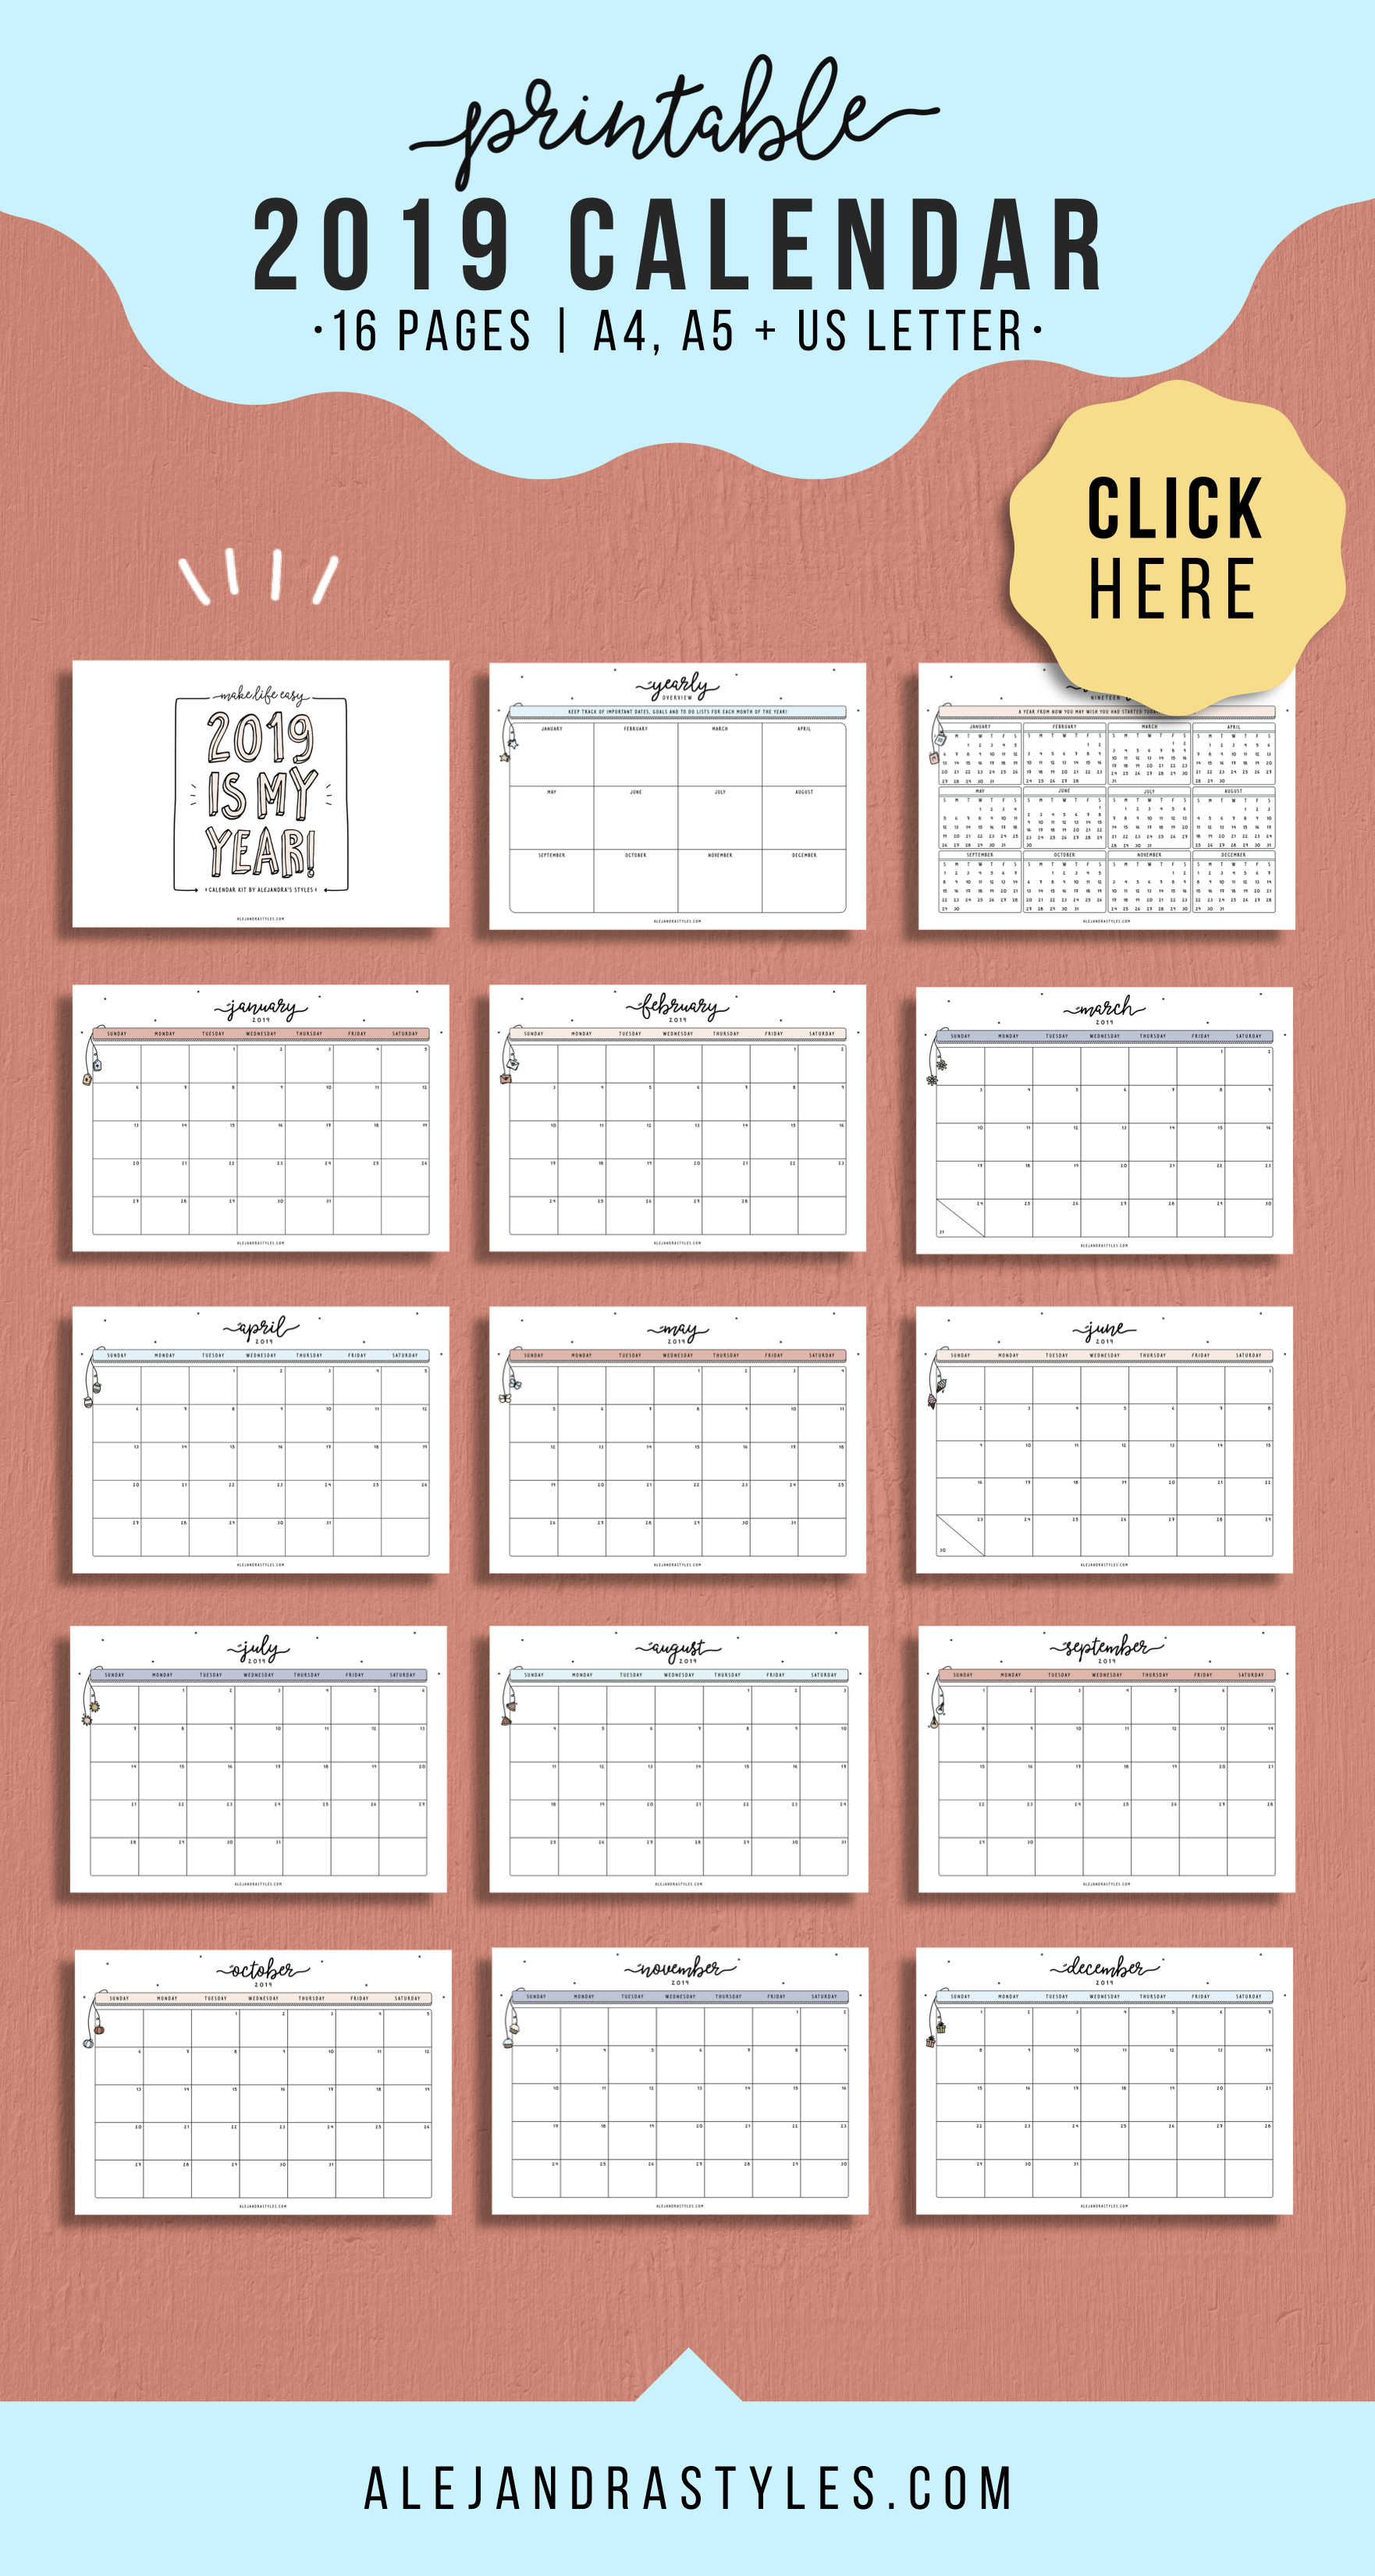 photograph about Fun Printable Calendar identified as 2019 Calendar Printable Planner for Table or Wall Monday